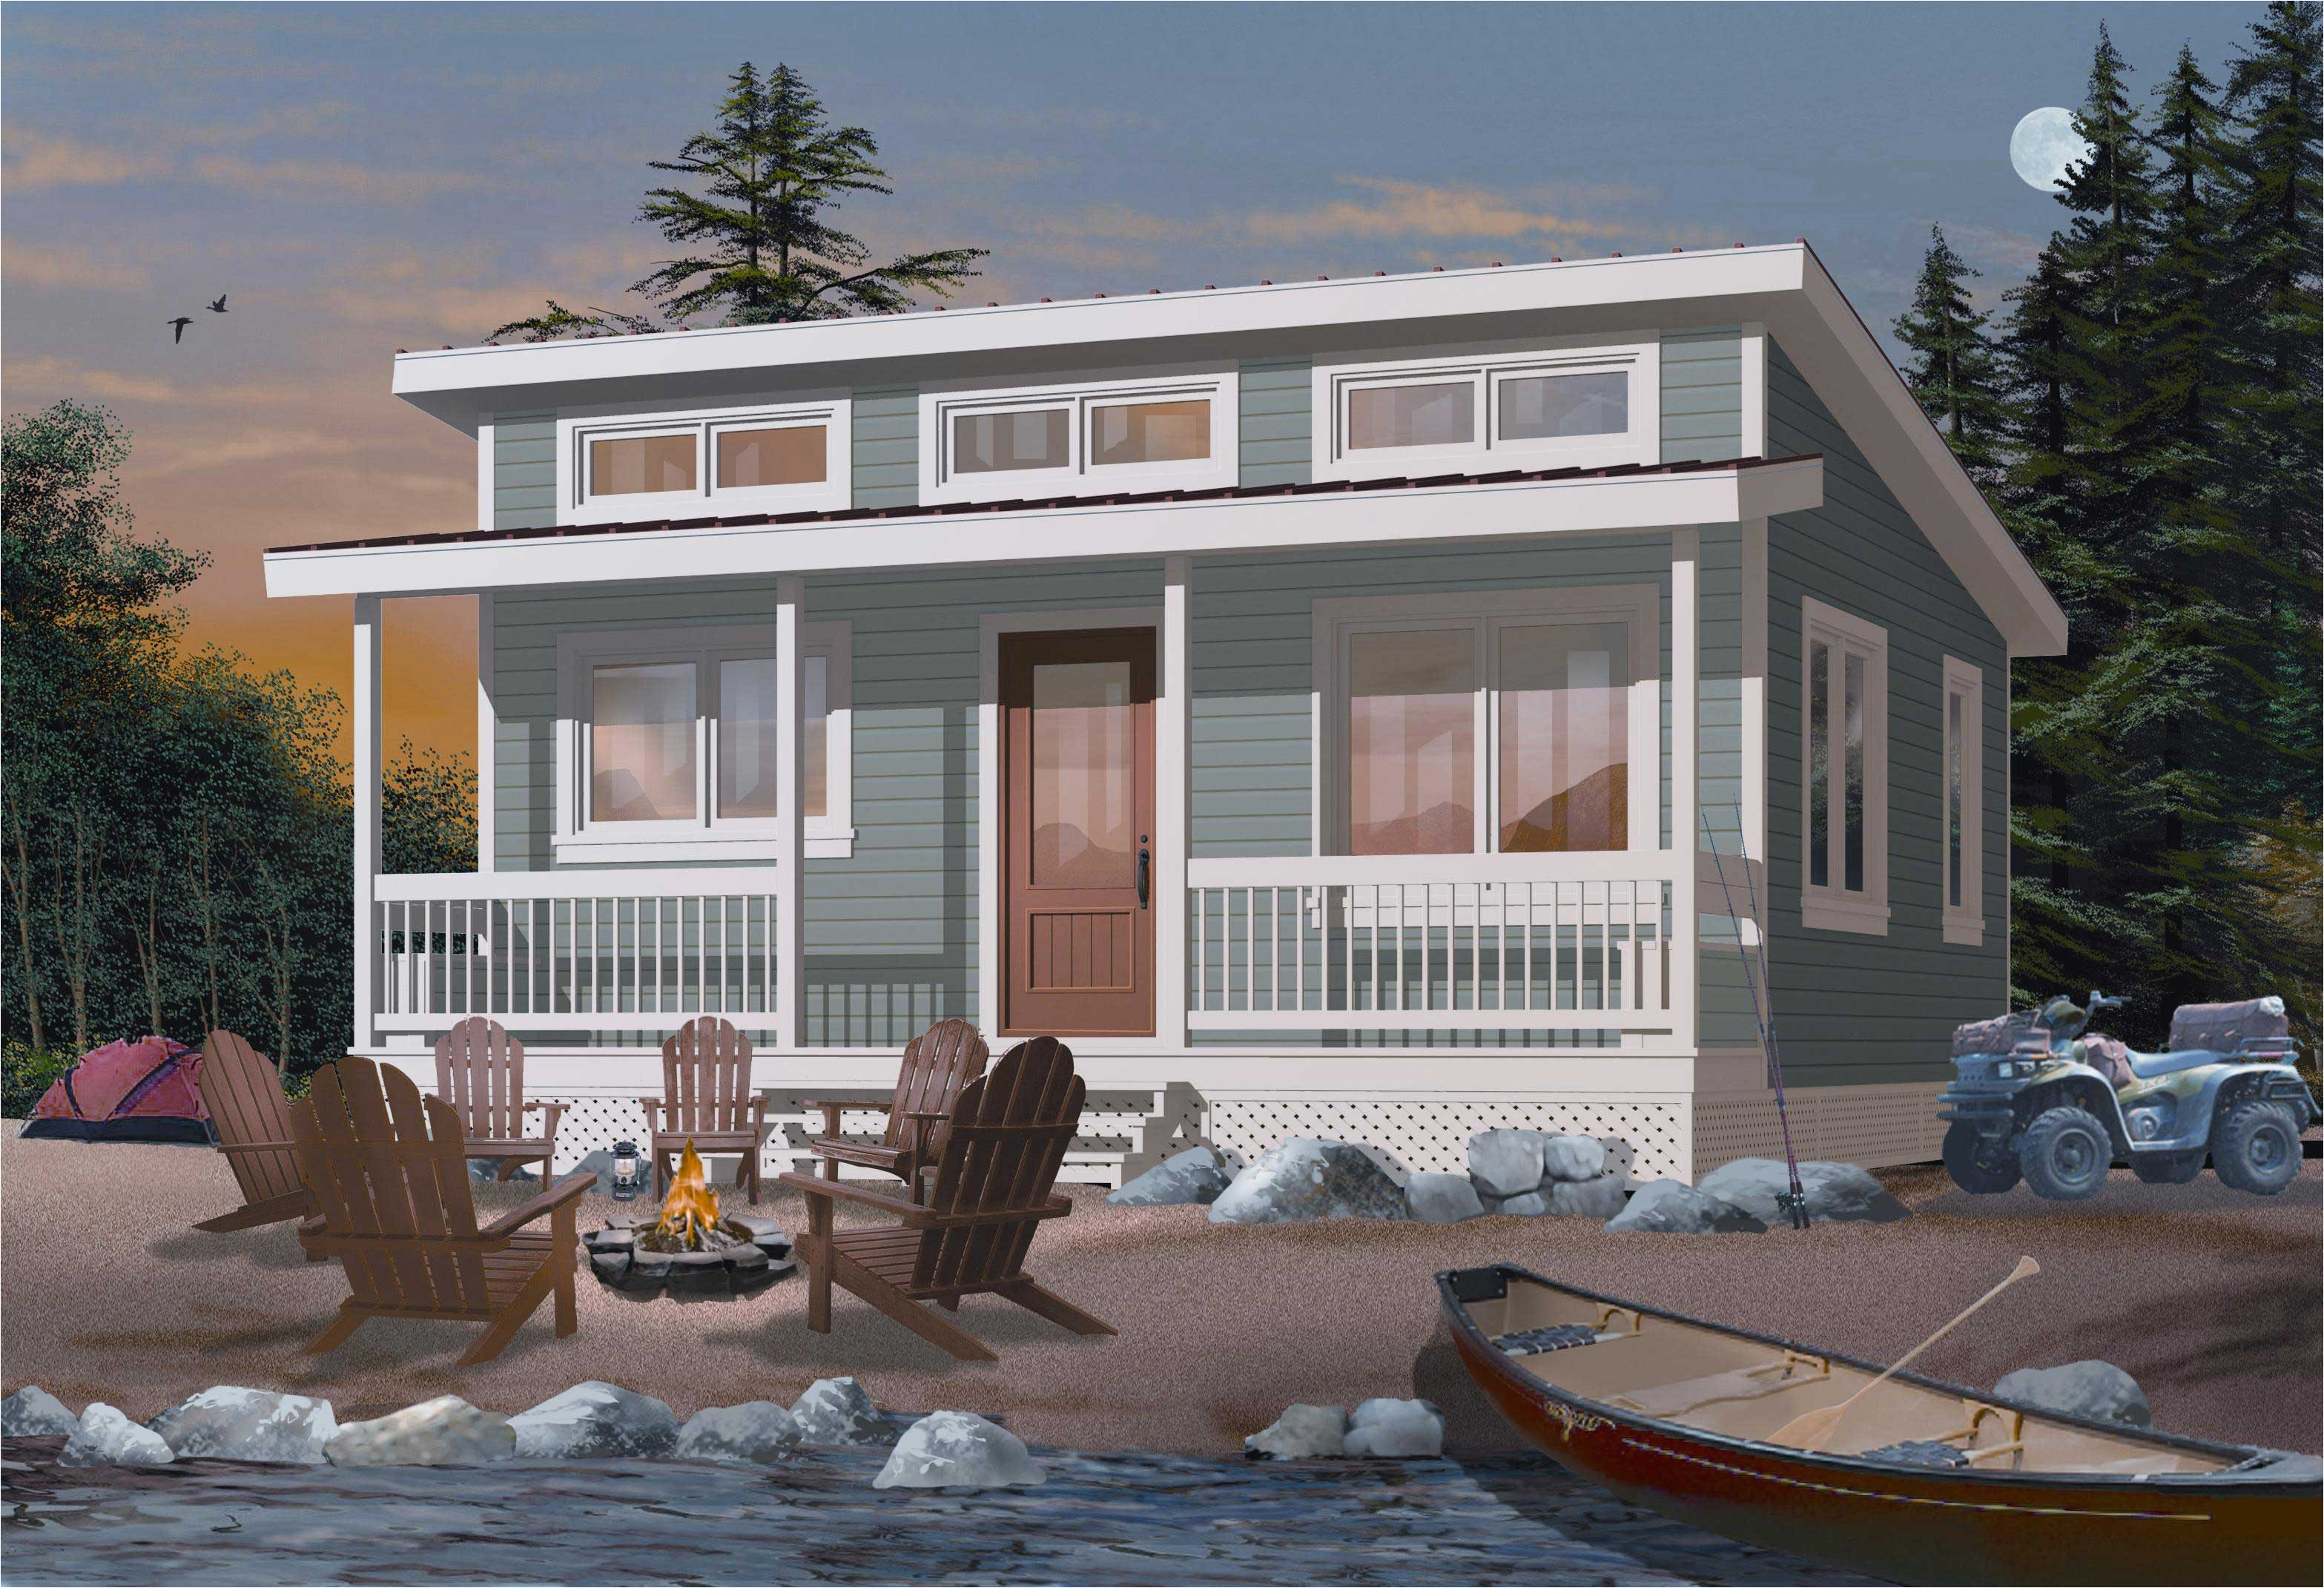 Plans for Little Houses Small Vacation Home Plans or Tiny House Home Design